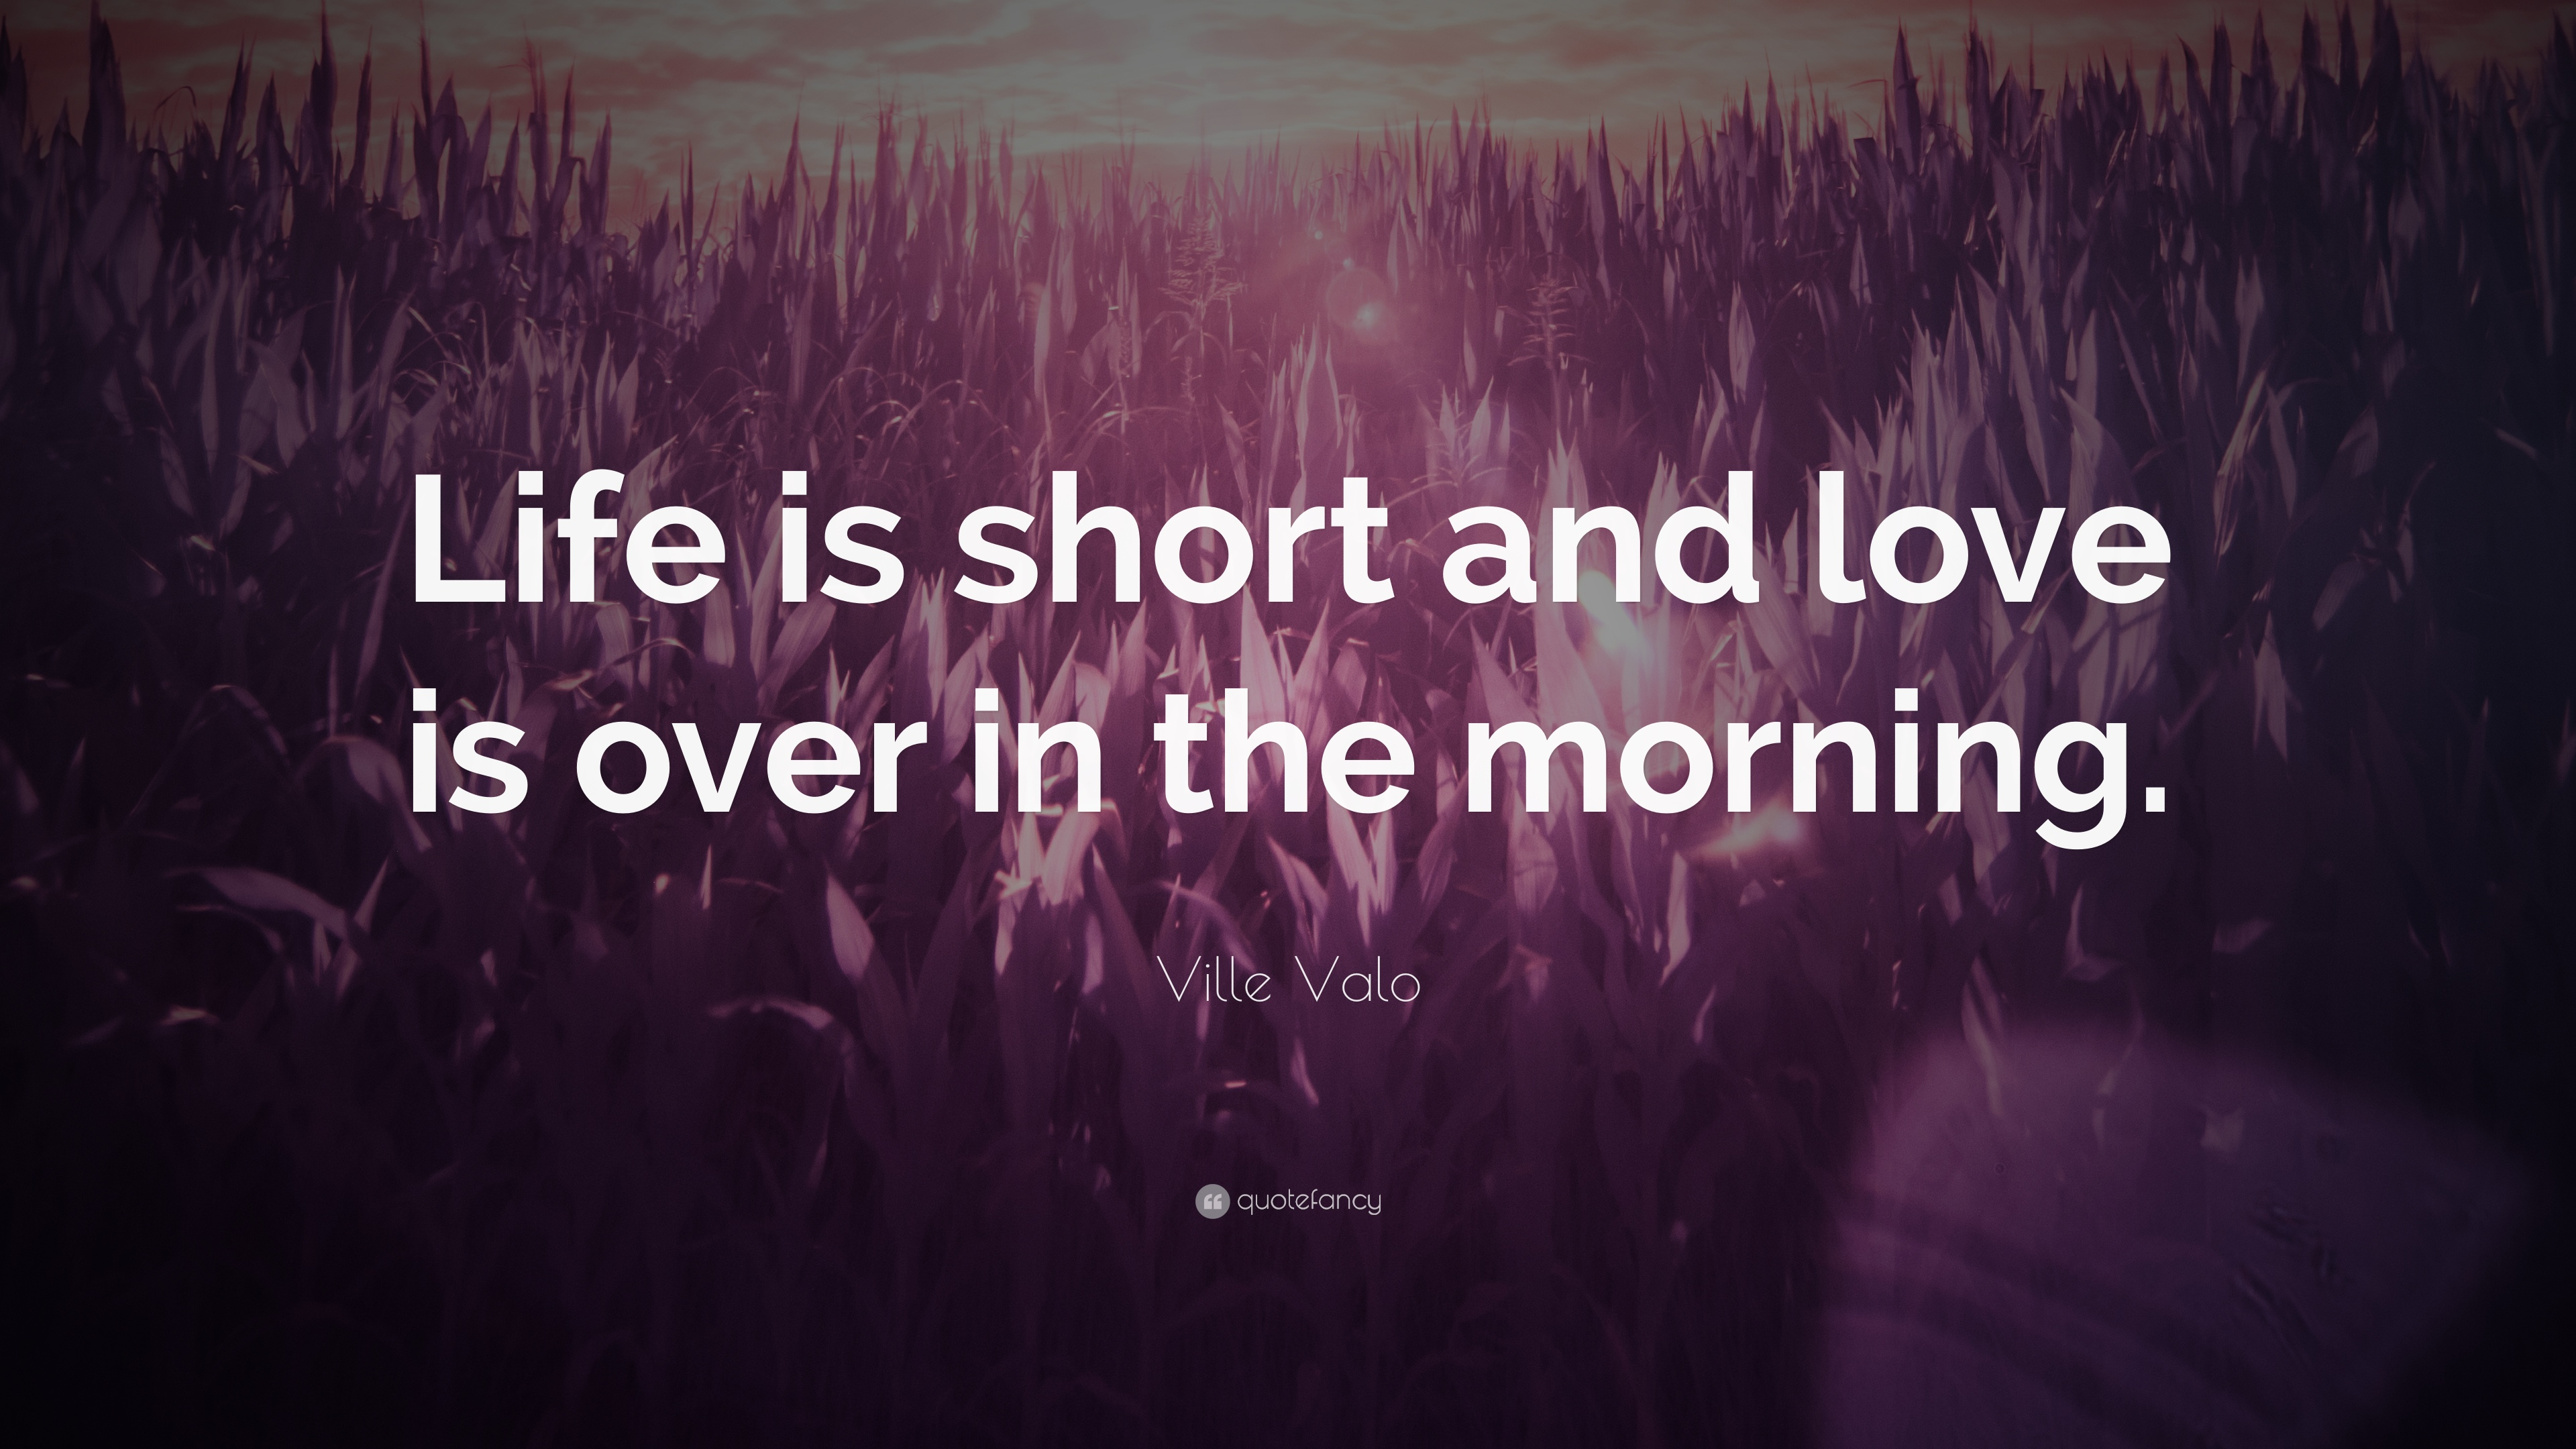 "Ville Valo Quote ""Life is short and love is over in the morning"